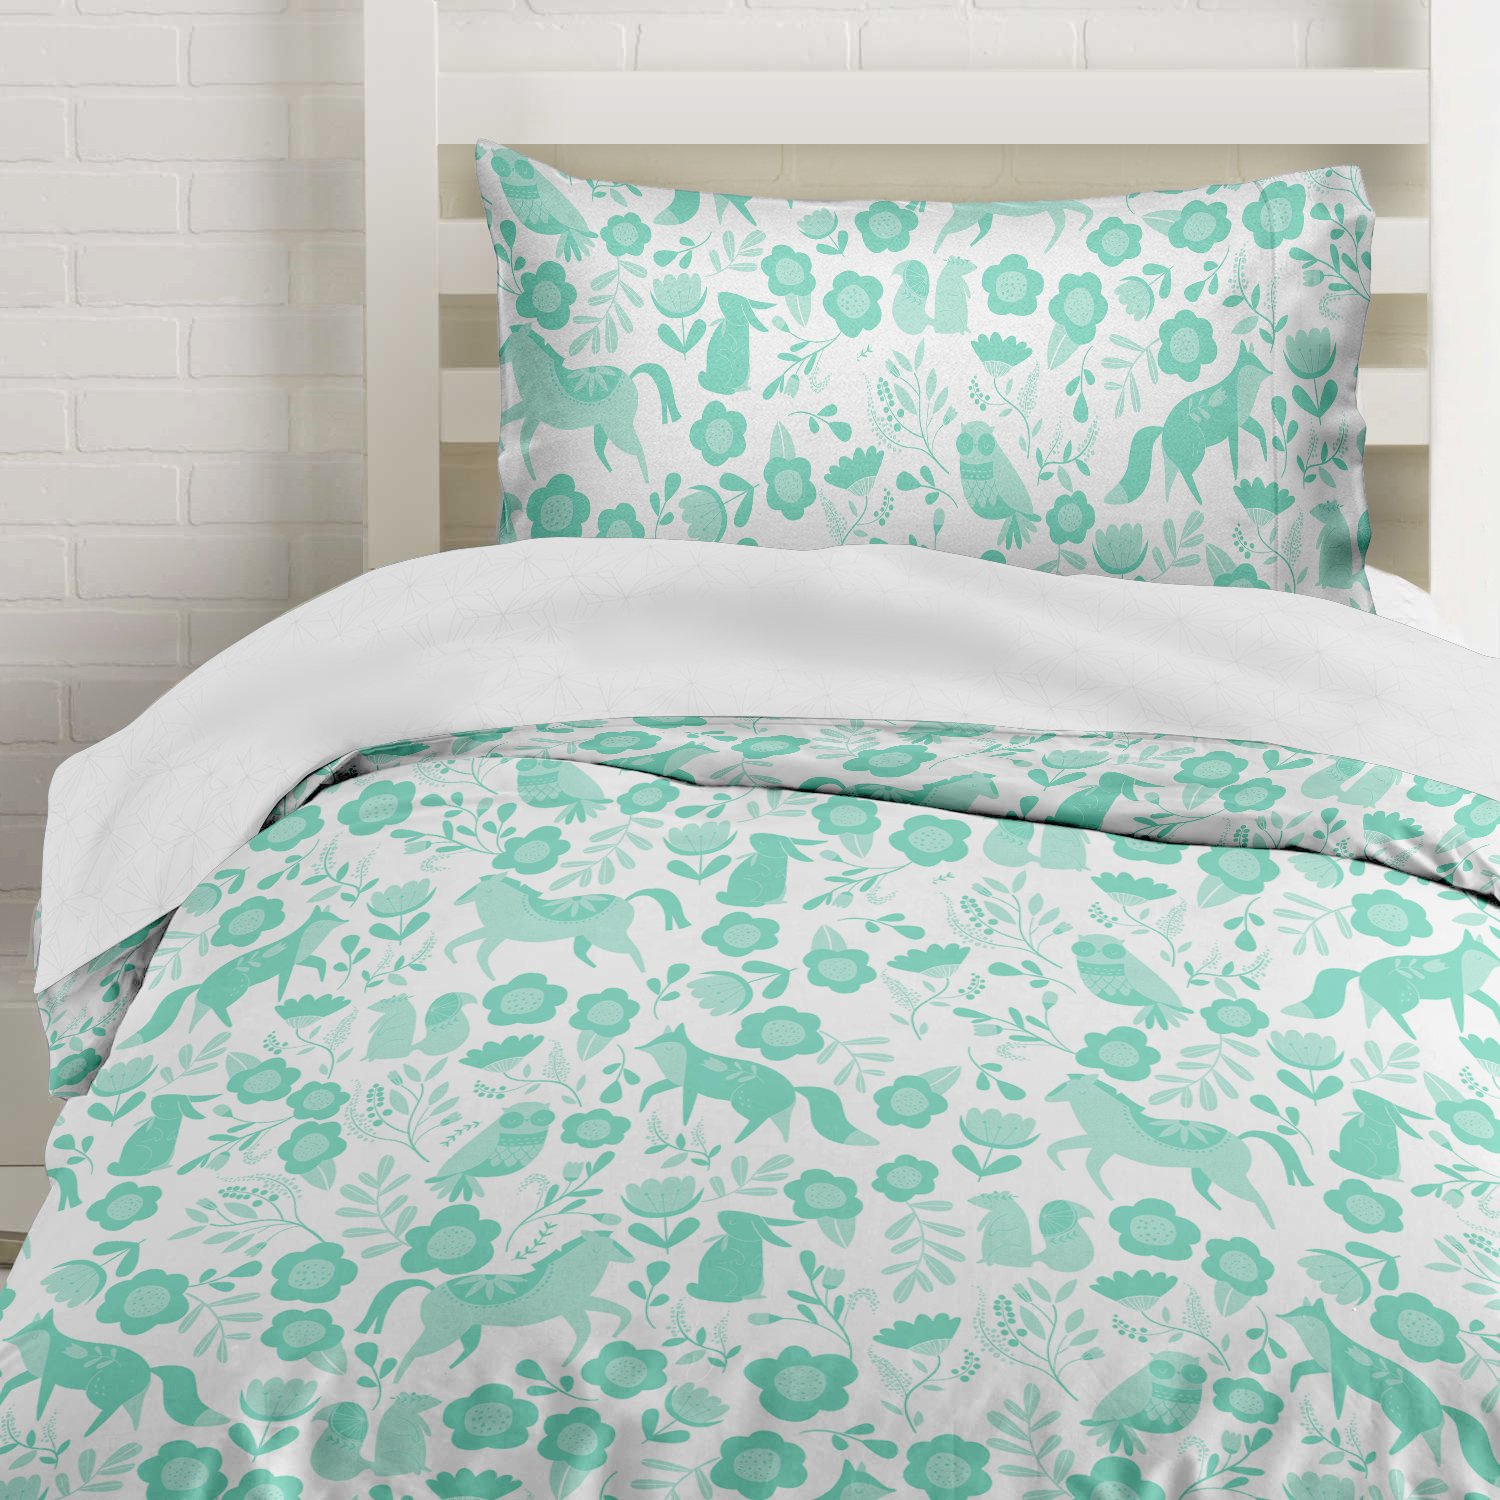 Seafoam Green Folktale Forest Animals Duvet Cover Twin Size Bedding, White and Teal Woodland Creatures